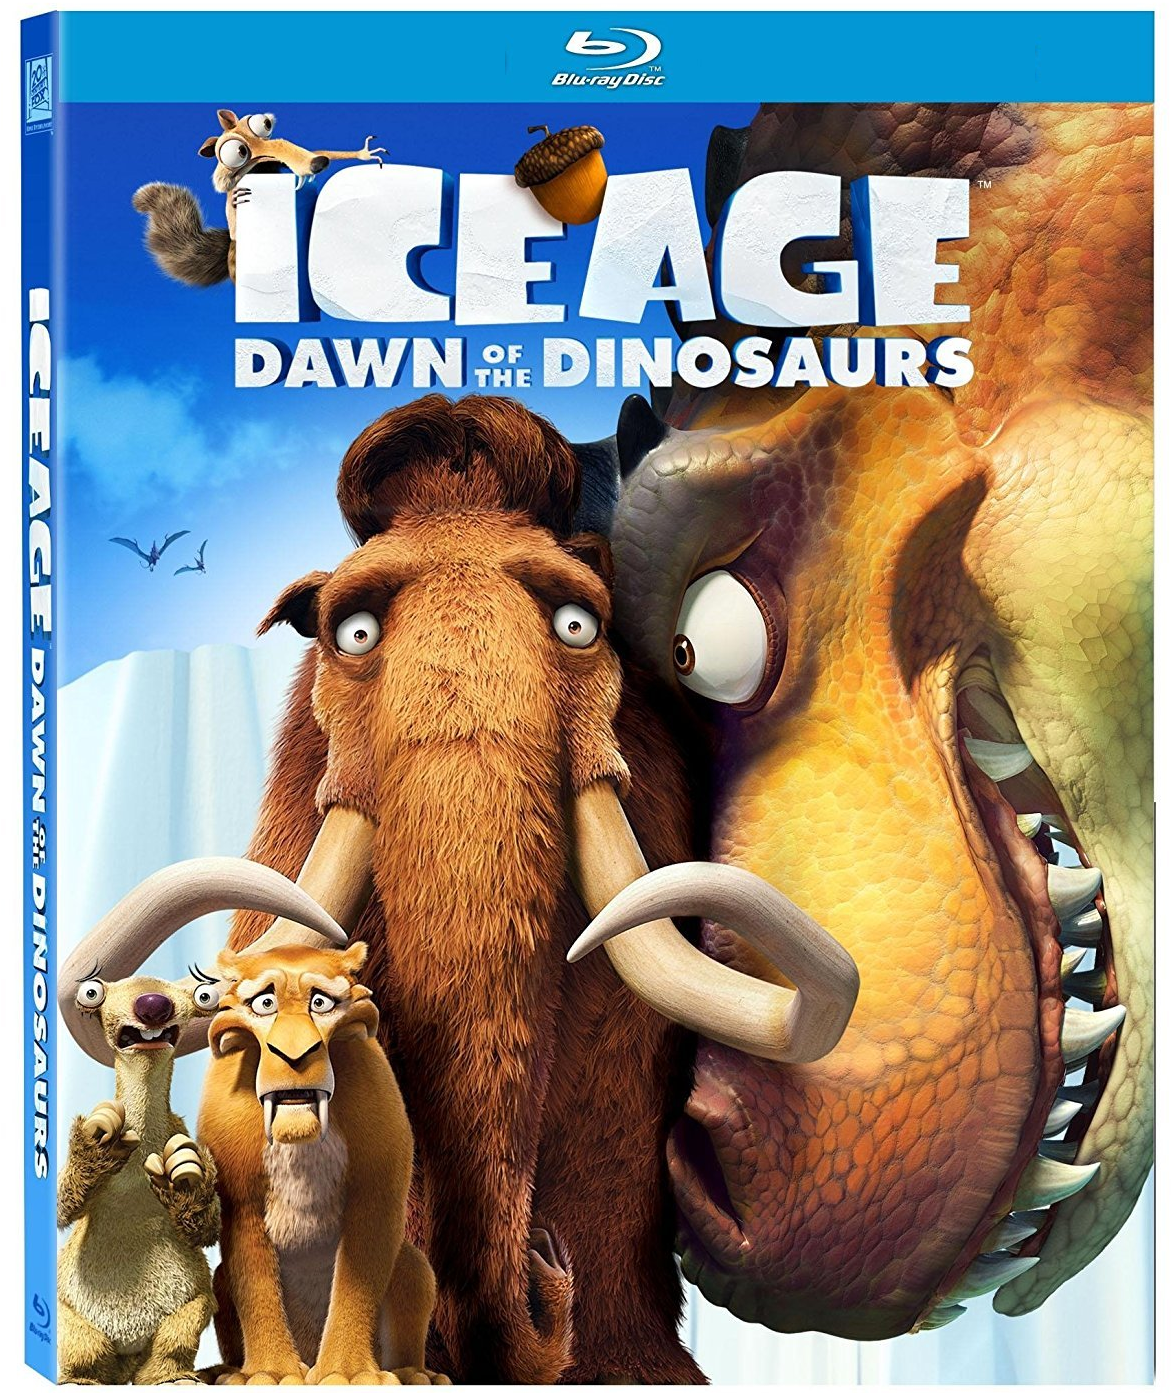 Ice Age: Dawn of the Dinosaurs (Blu-ray / DVD Set)